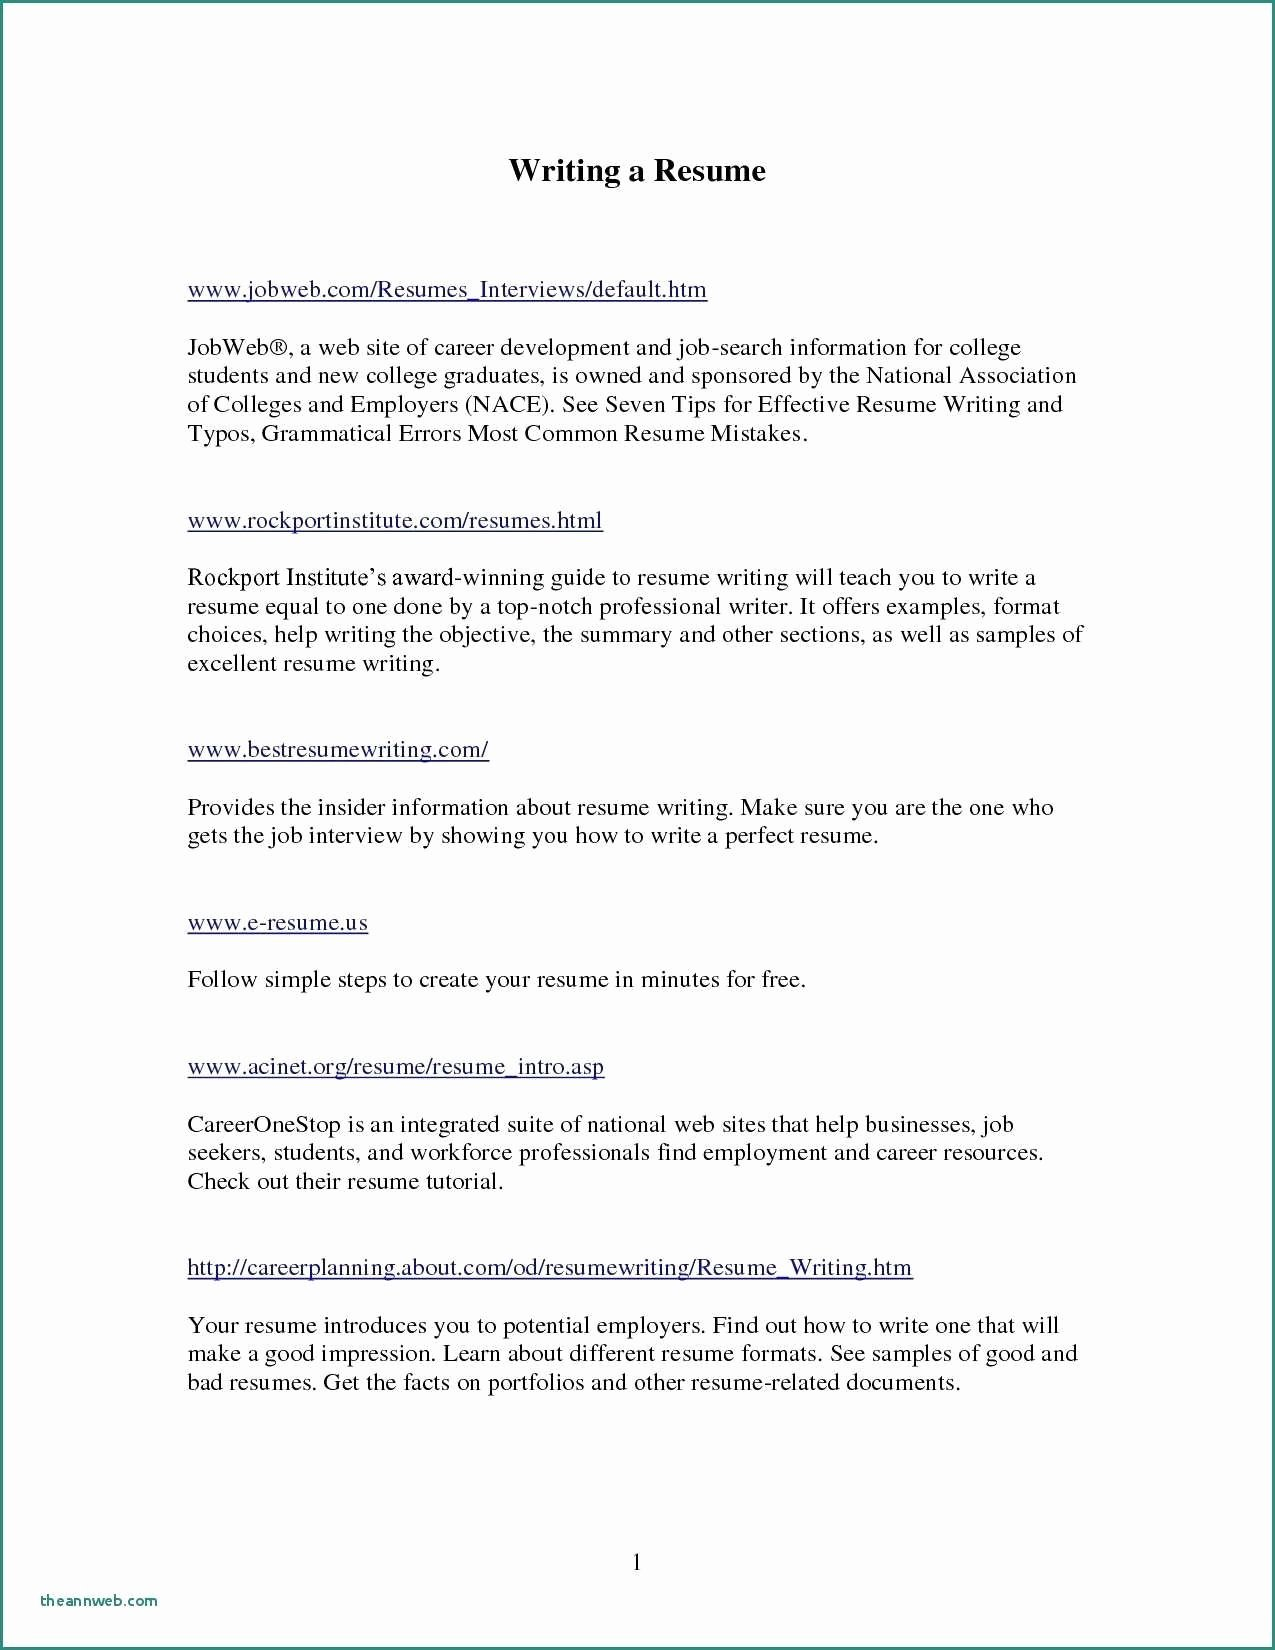 Business School Recommendation Letter Awesome New Re Mendation Letter Template Business School